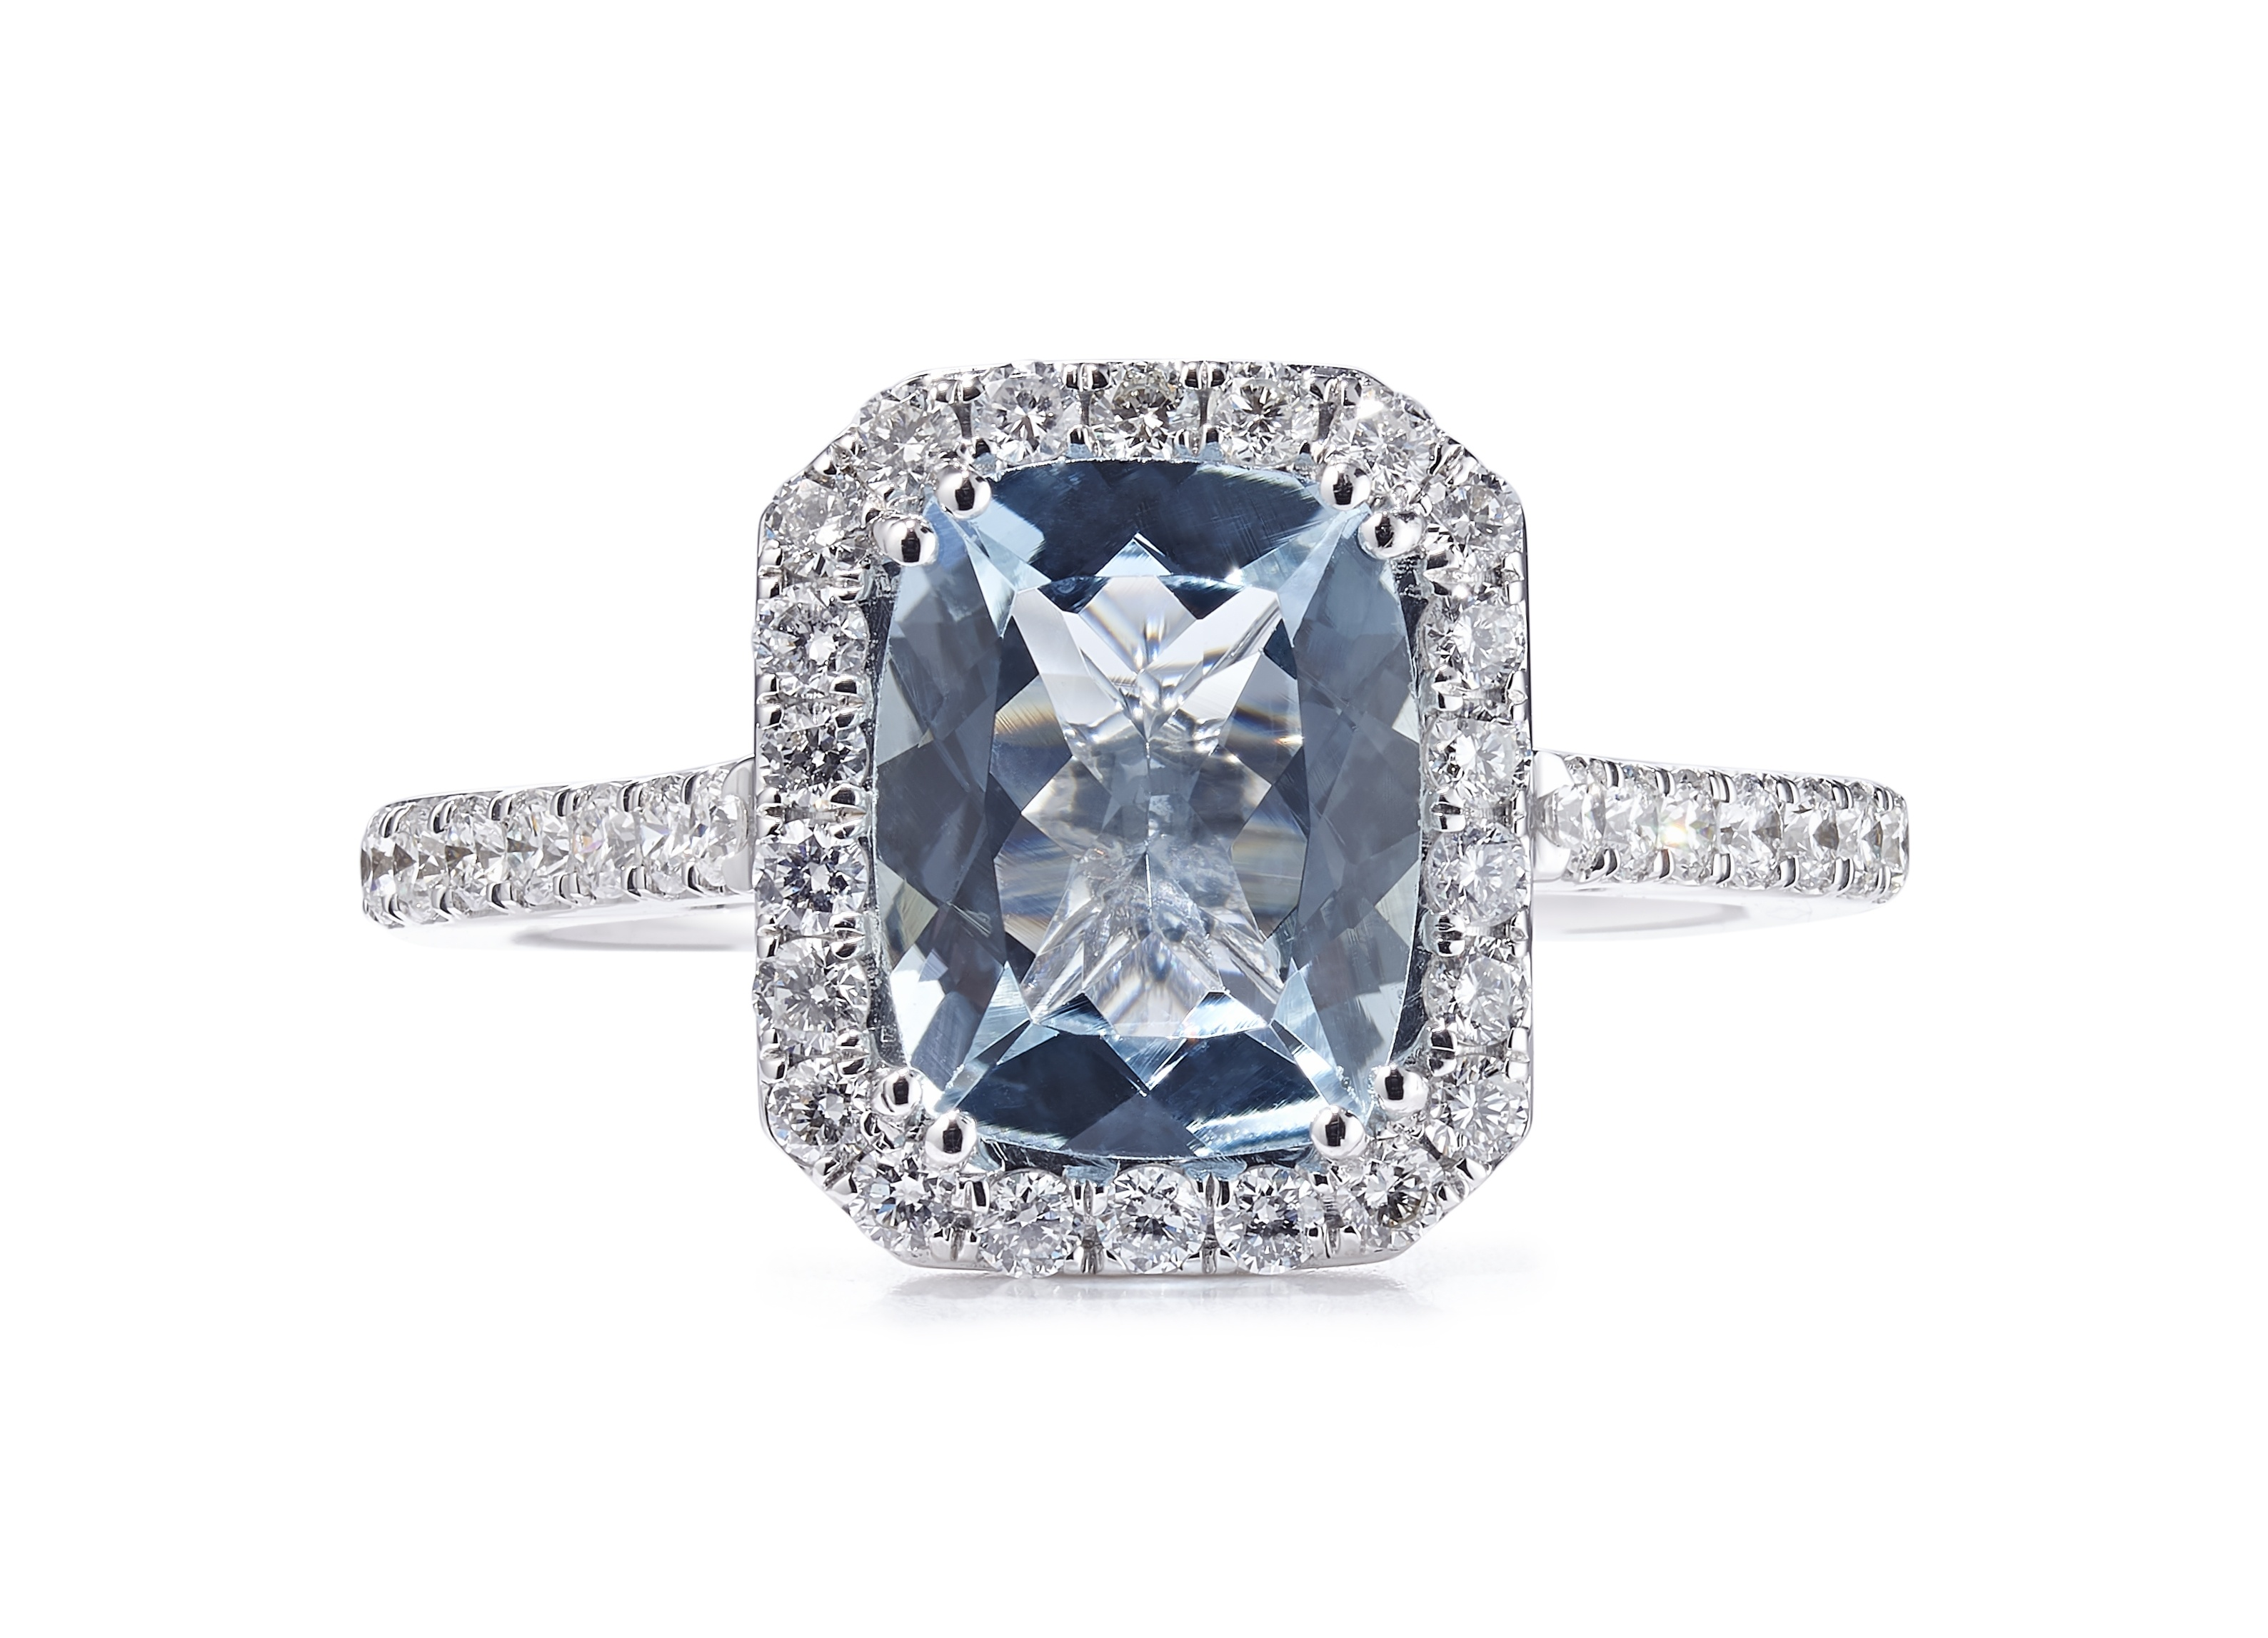 18ct White Gold Aquamarine and Diamond Halo Design Ring